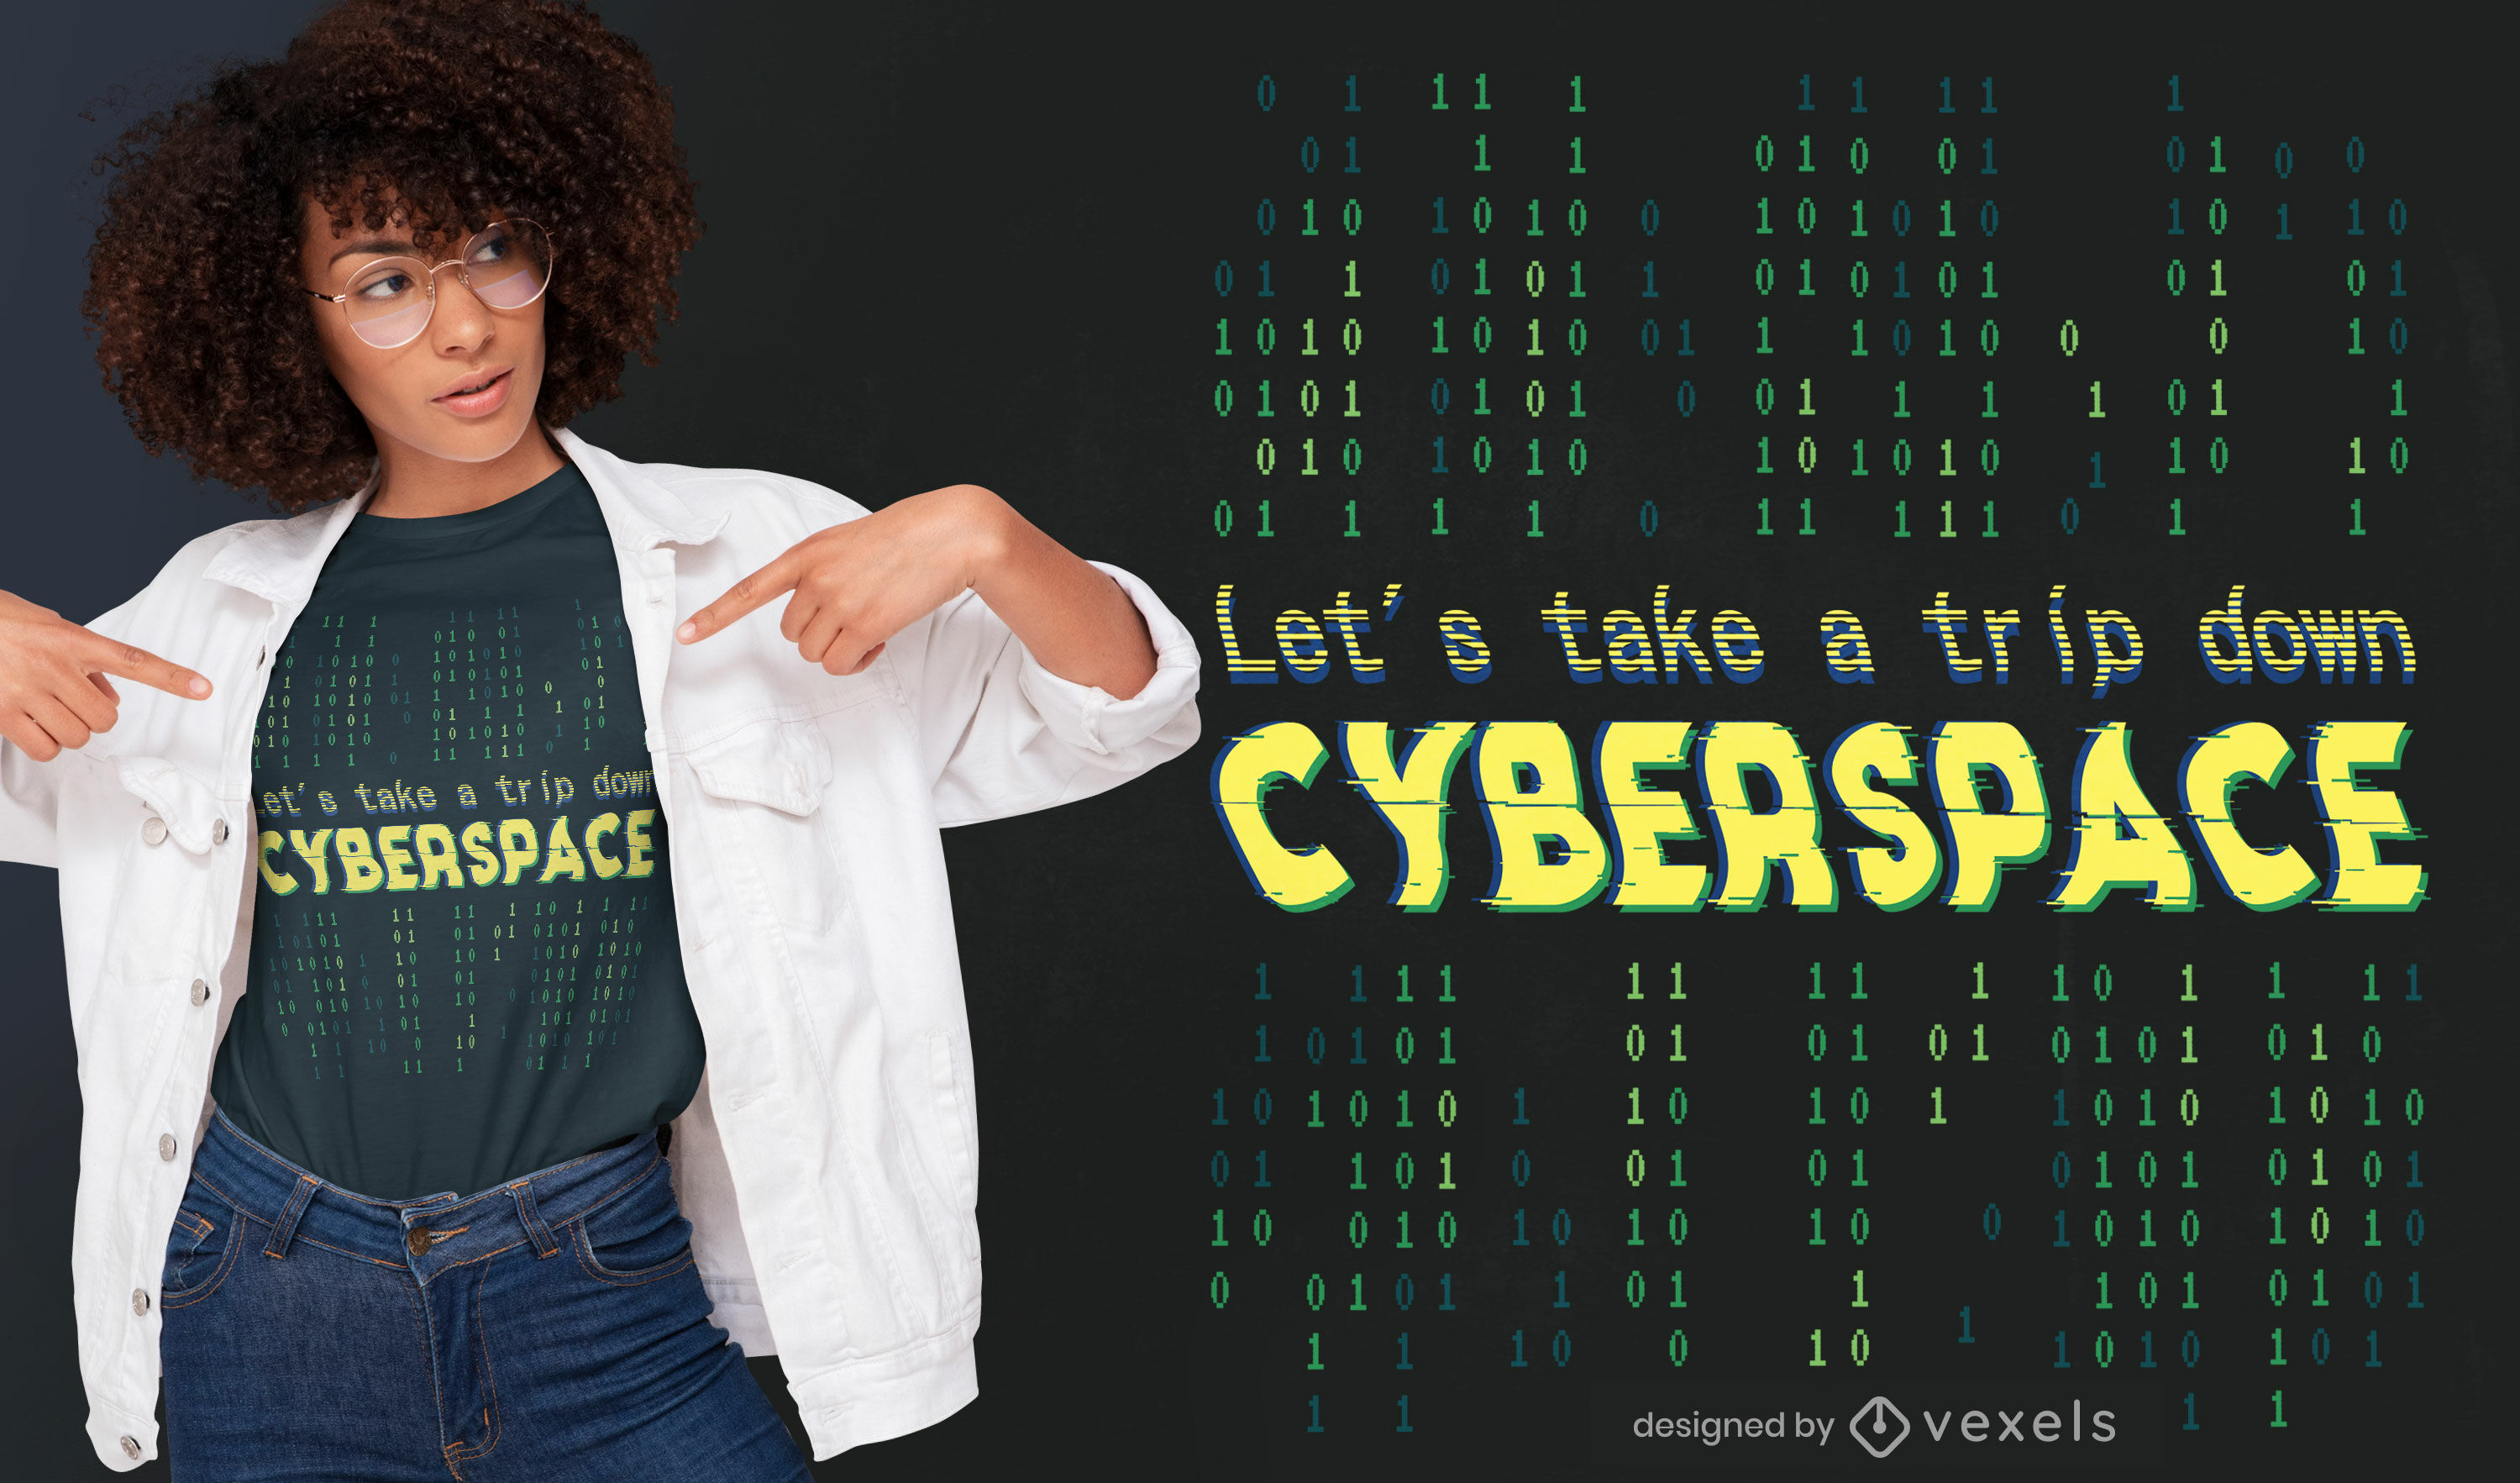 Cyberspace quote t-shirt design